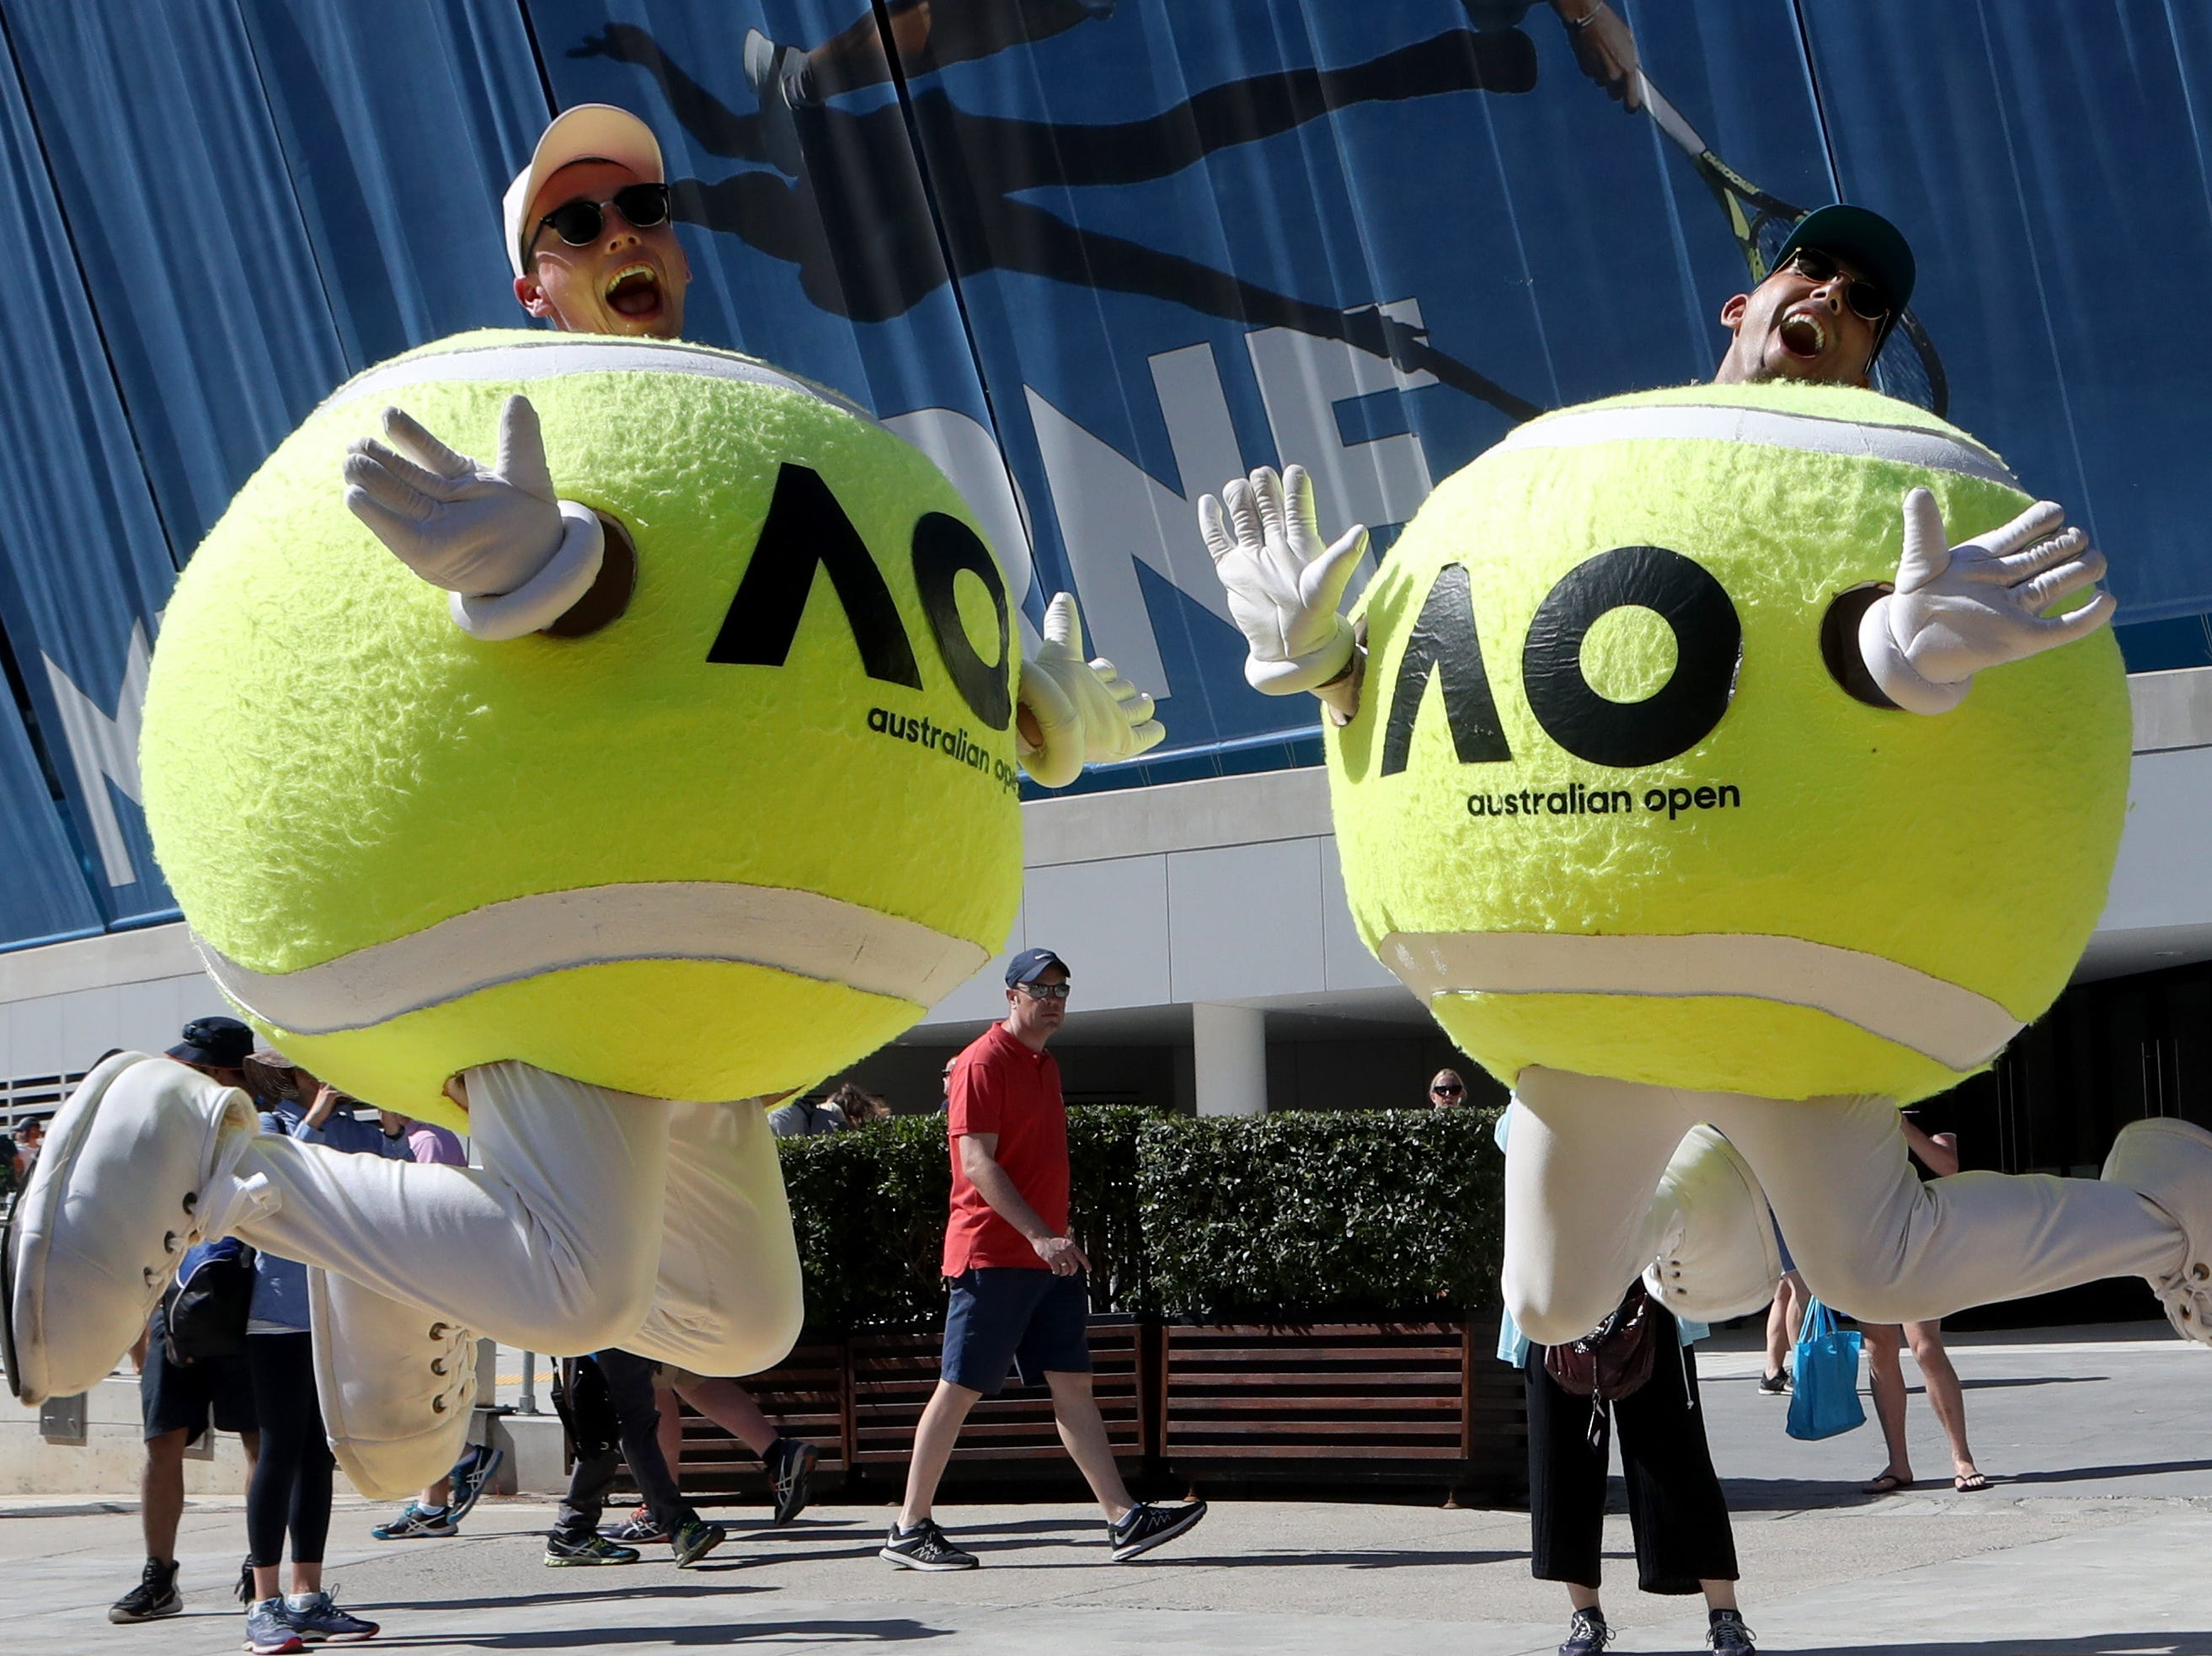 The Australian Open mascots are ready for action.